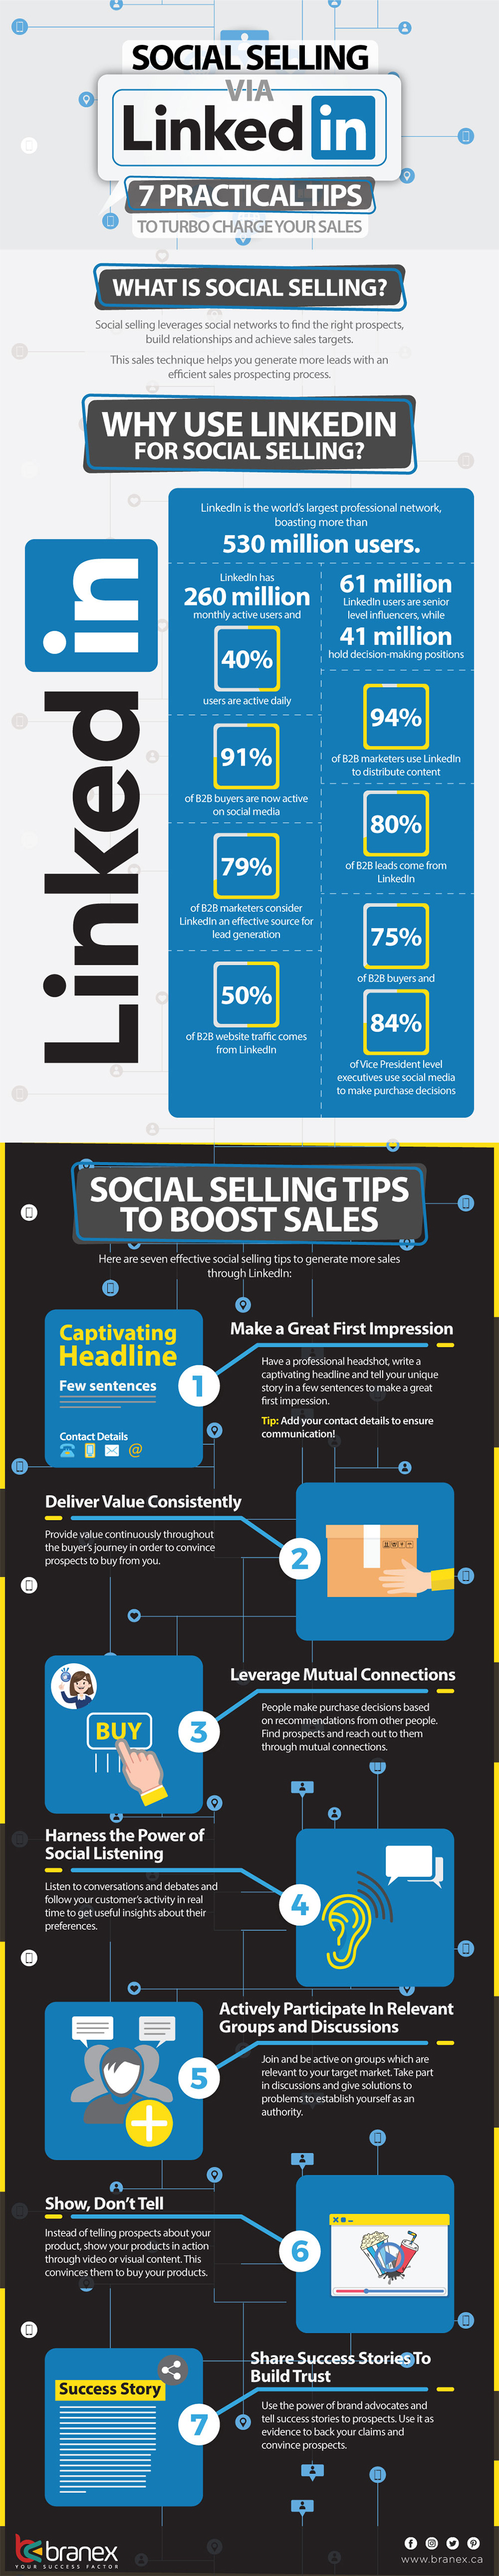 Top 7 Tips On LinkedIn Social Selling